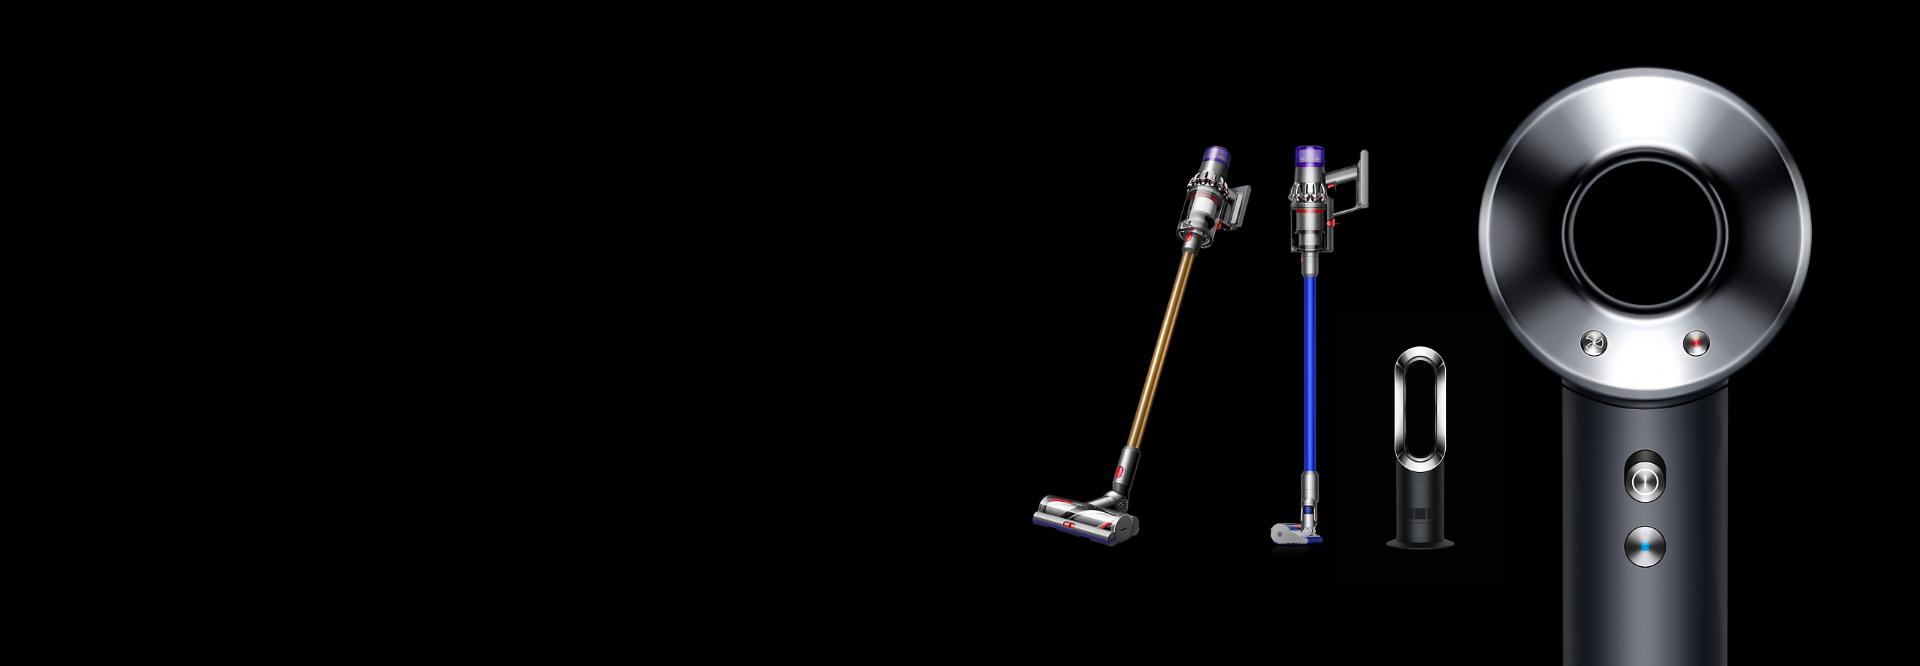 Dyson Supersonic Black/Nickel Exclusive Black Friday Offer